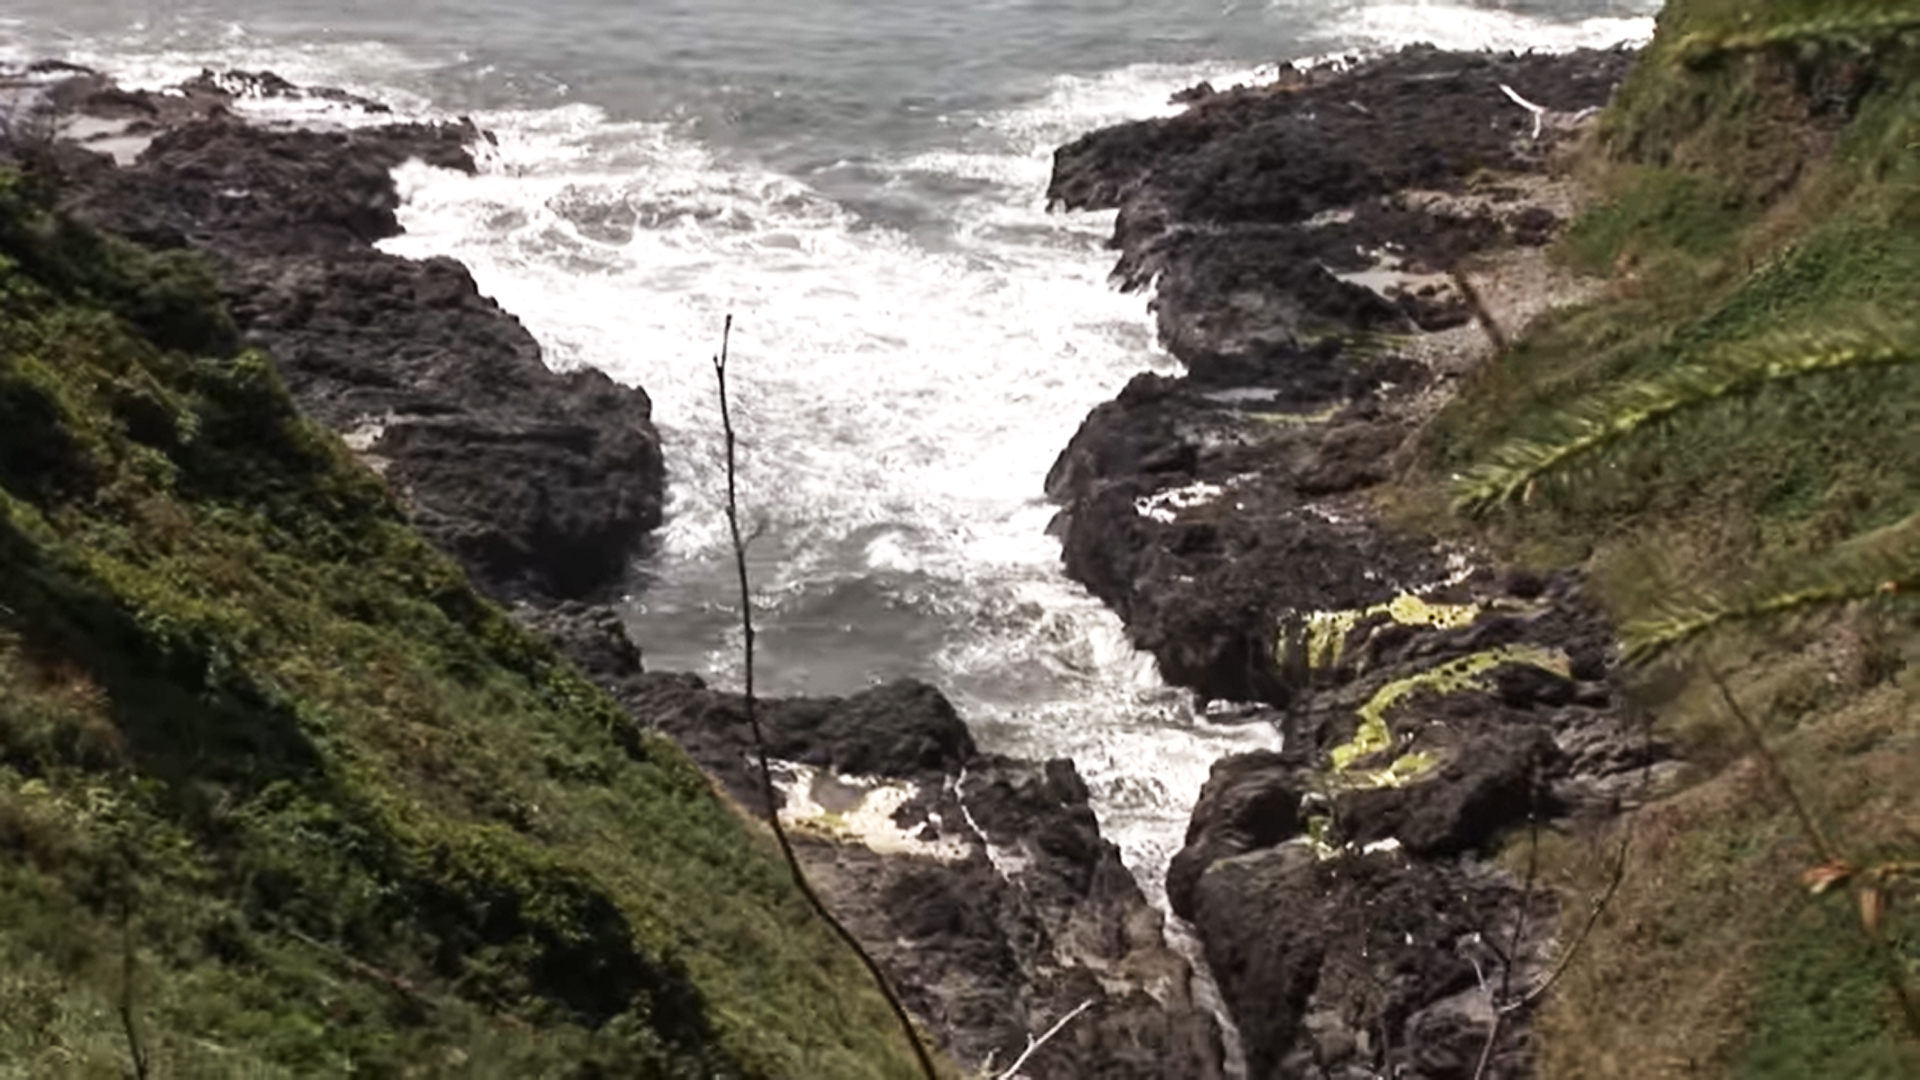 Man presumed dead after trying to jump across Devil's Churn inlet on Oregon coast